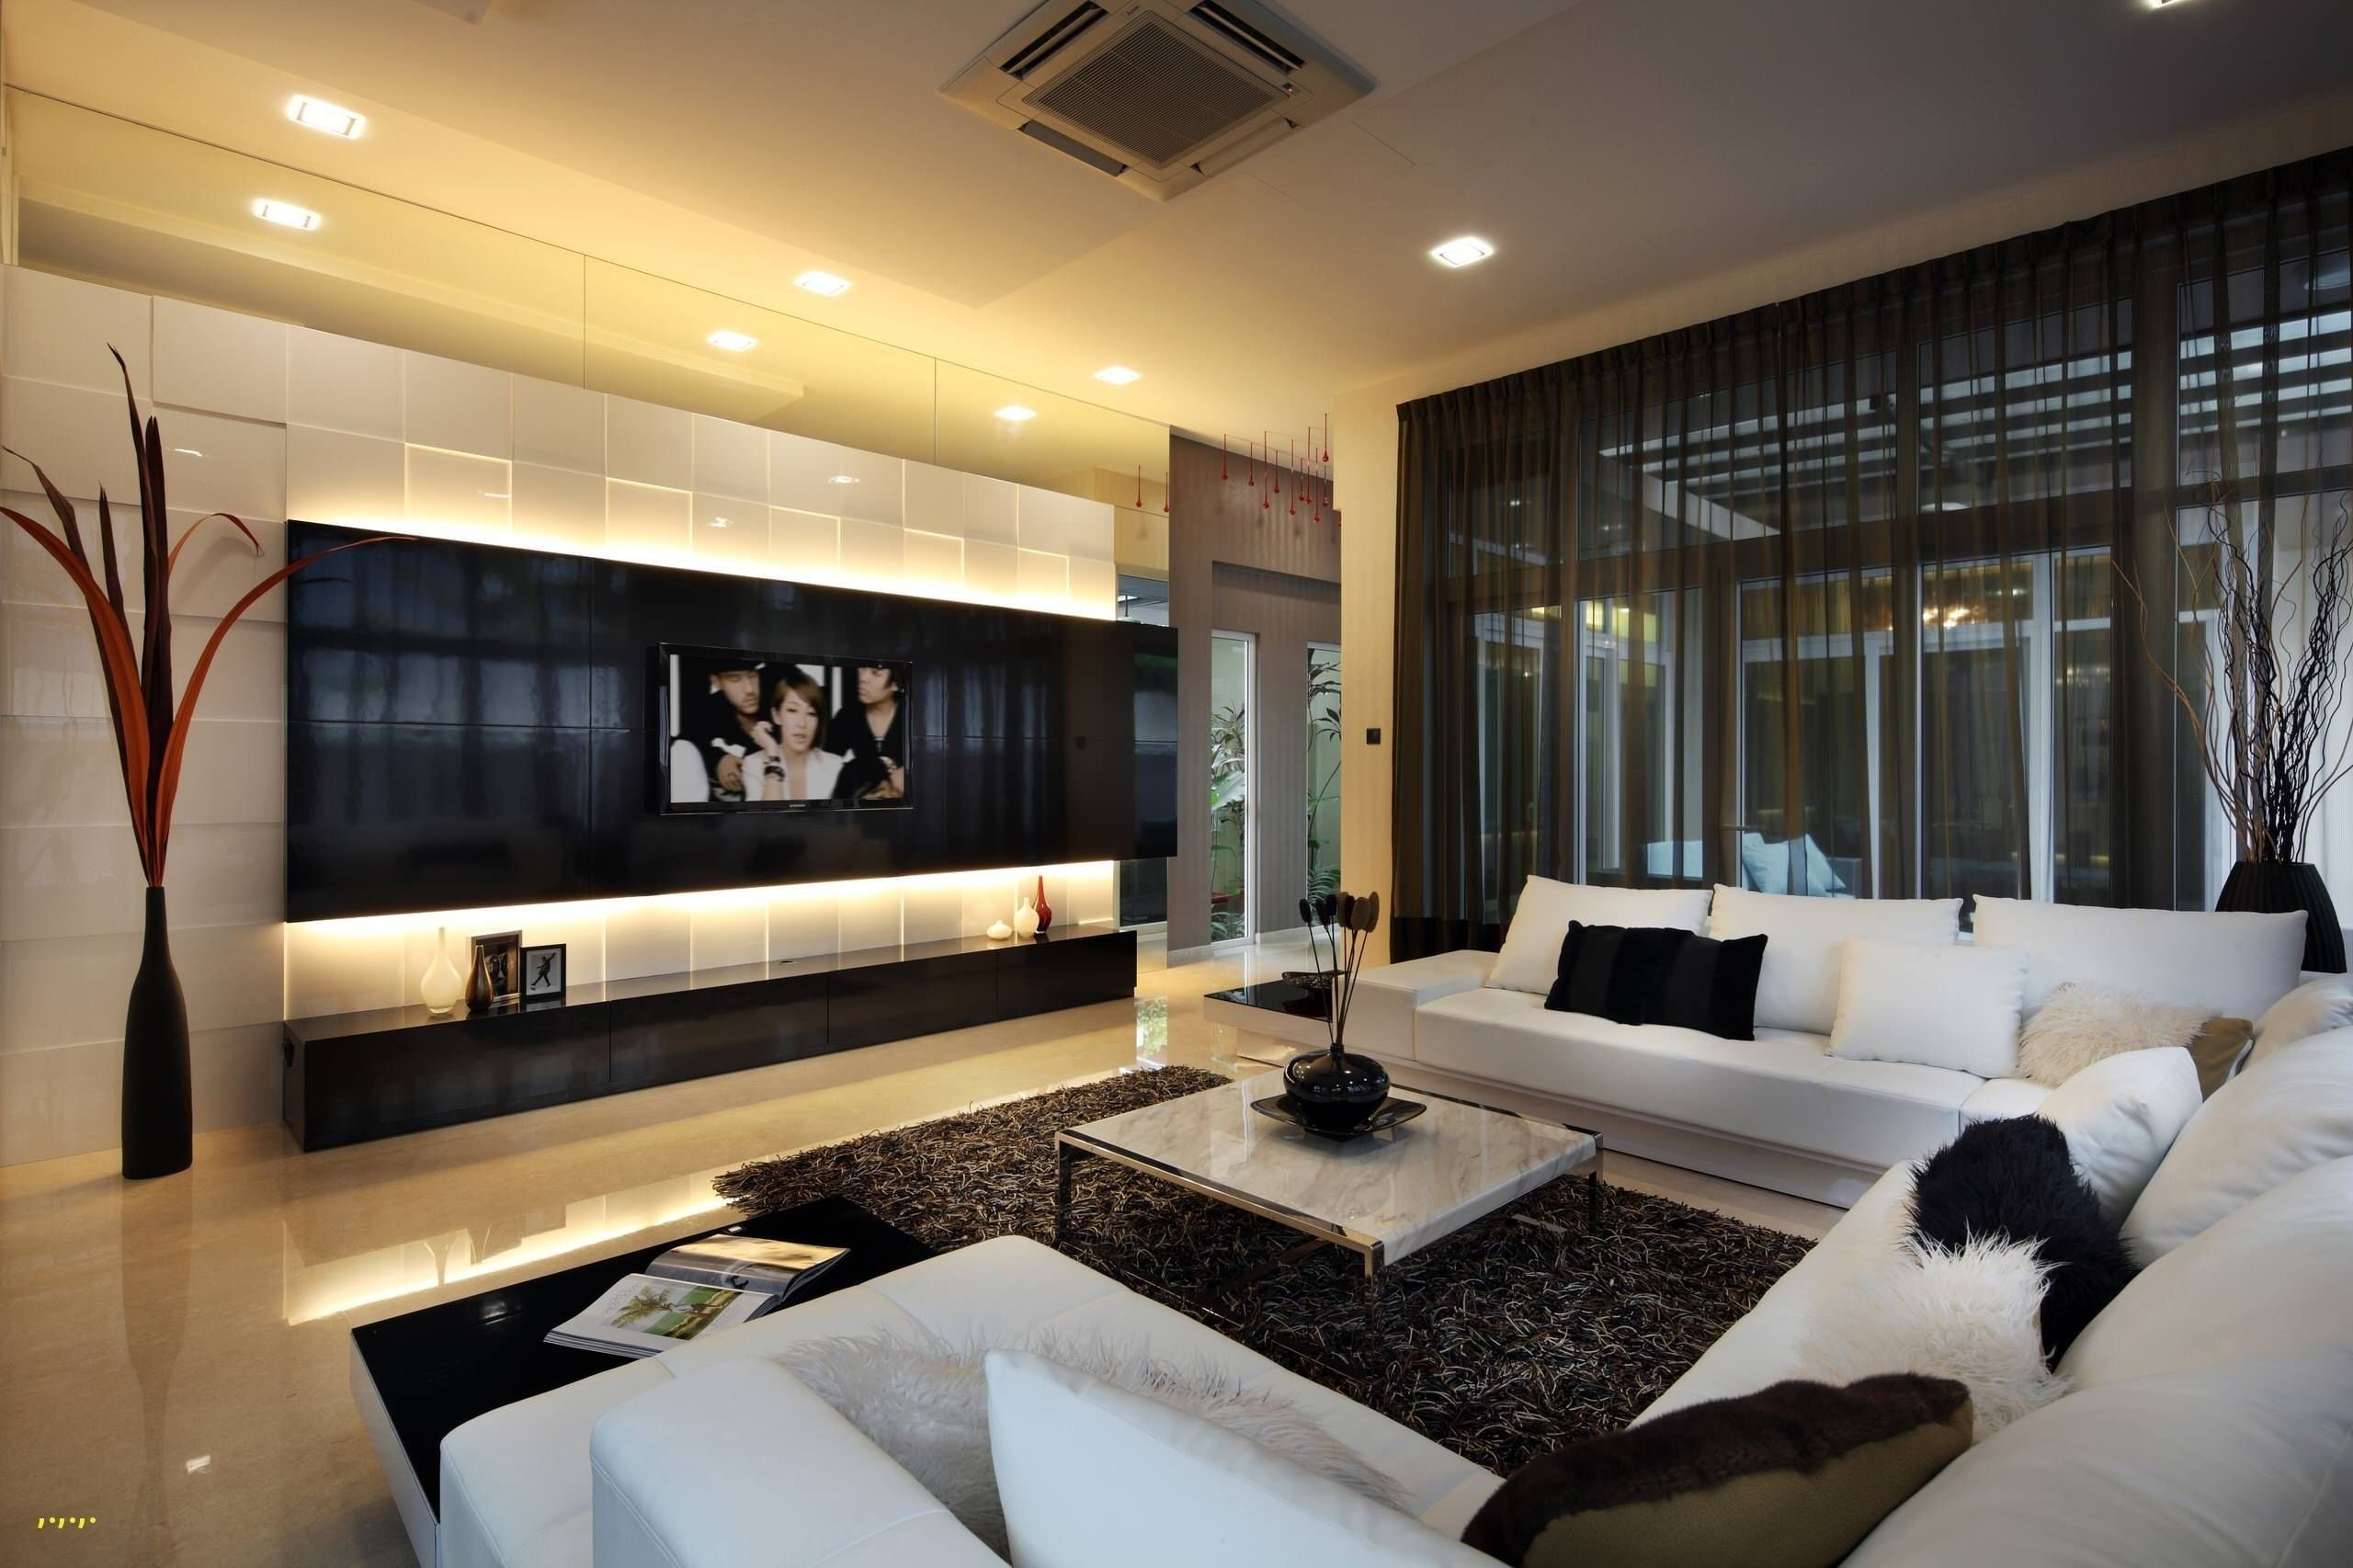 Living Room Decor With Tv Modern Mansion Living Room With Tv